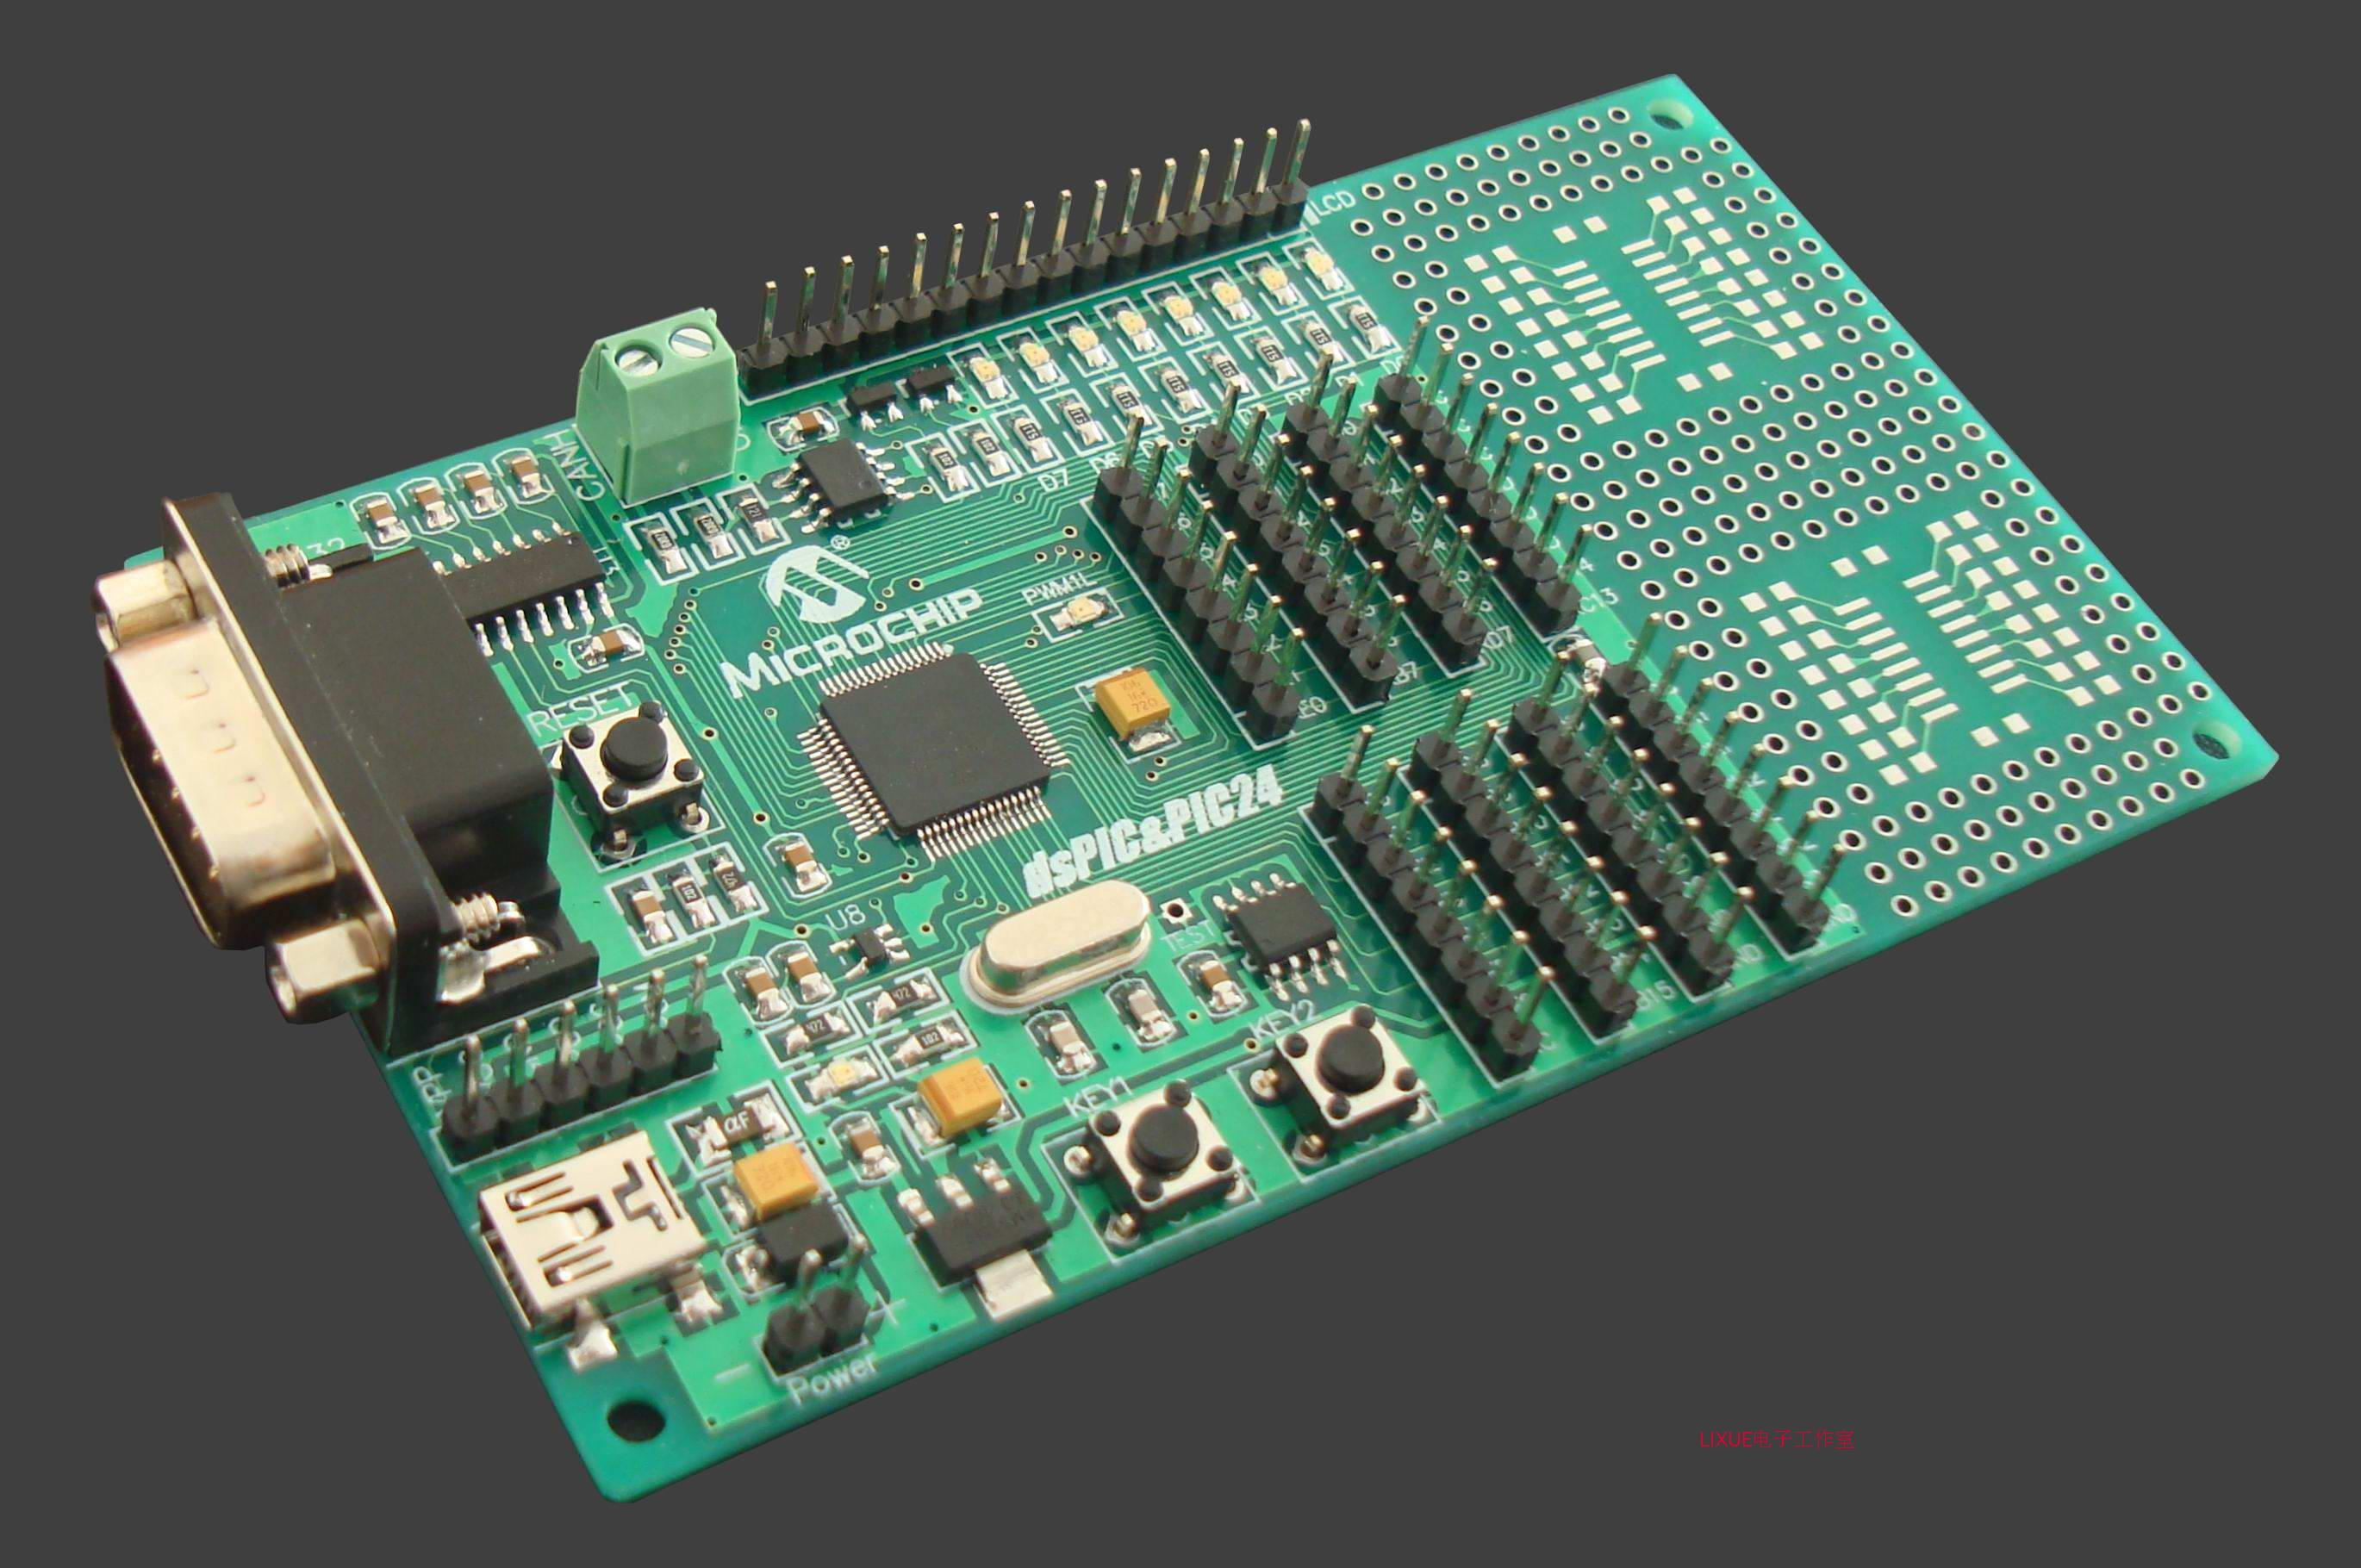 DsPIC33FJ128MC706 microcontroller, CAN motor, PIC learning board, development board, experimental board цена